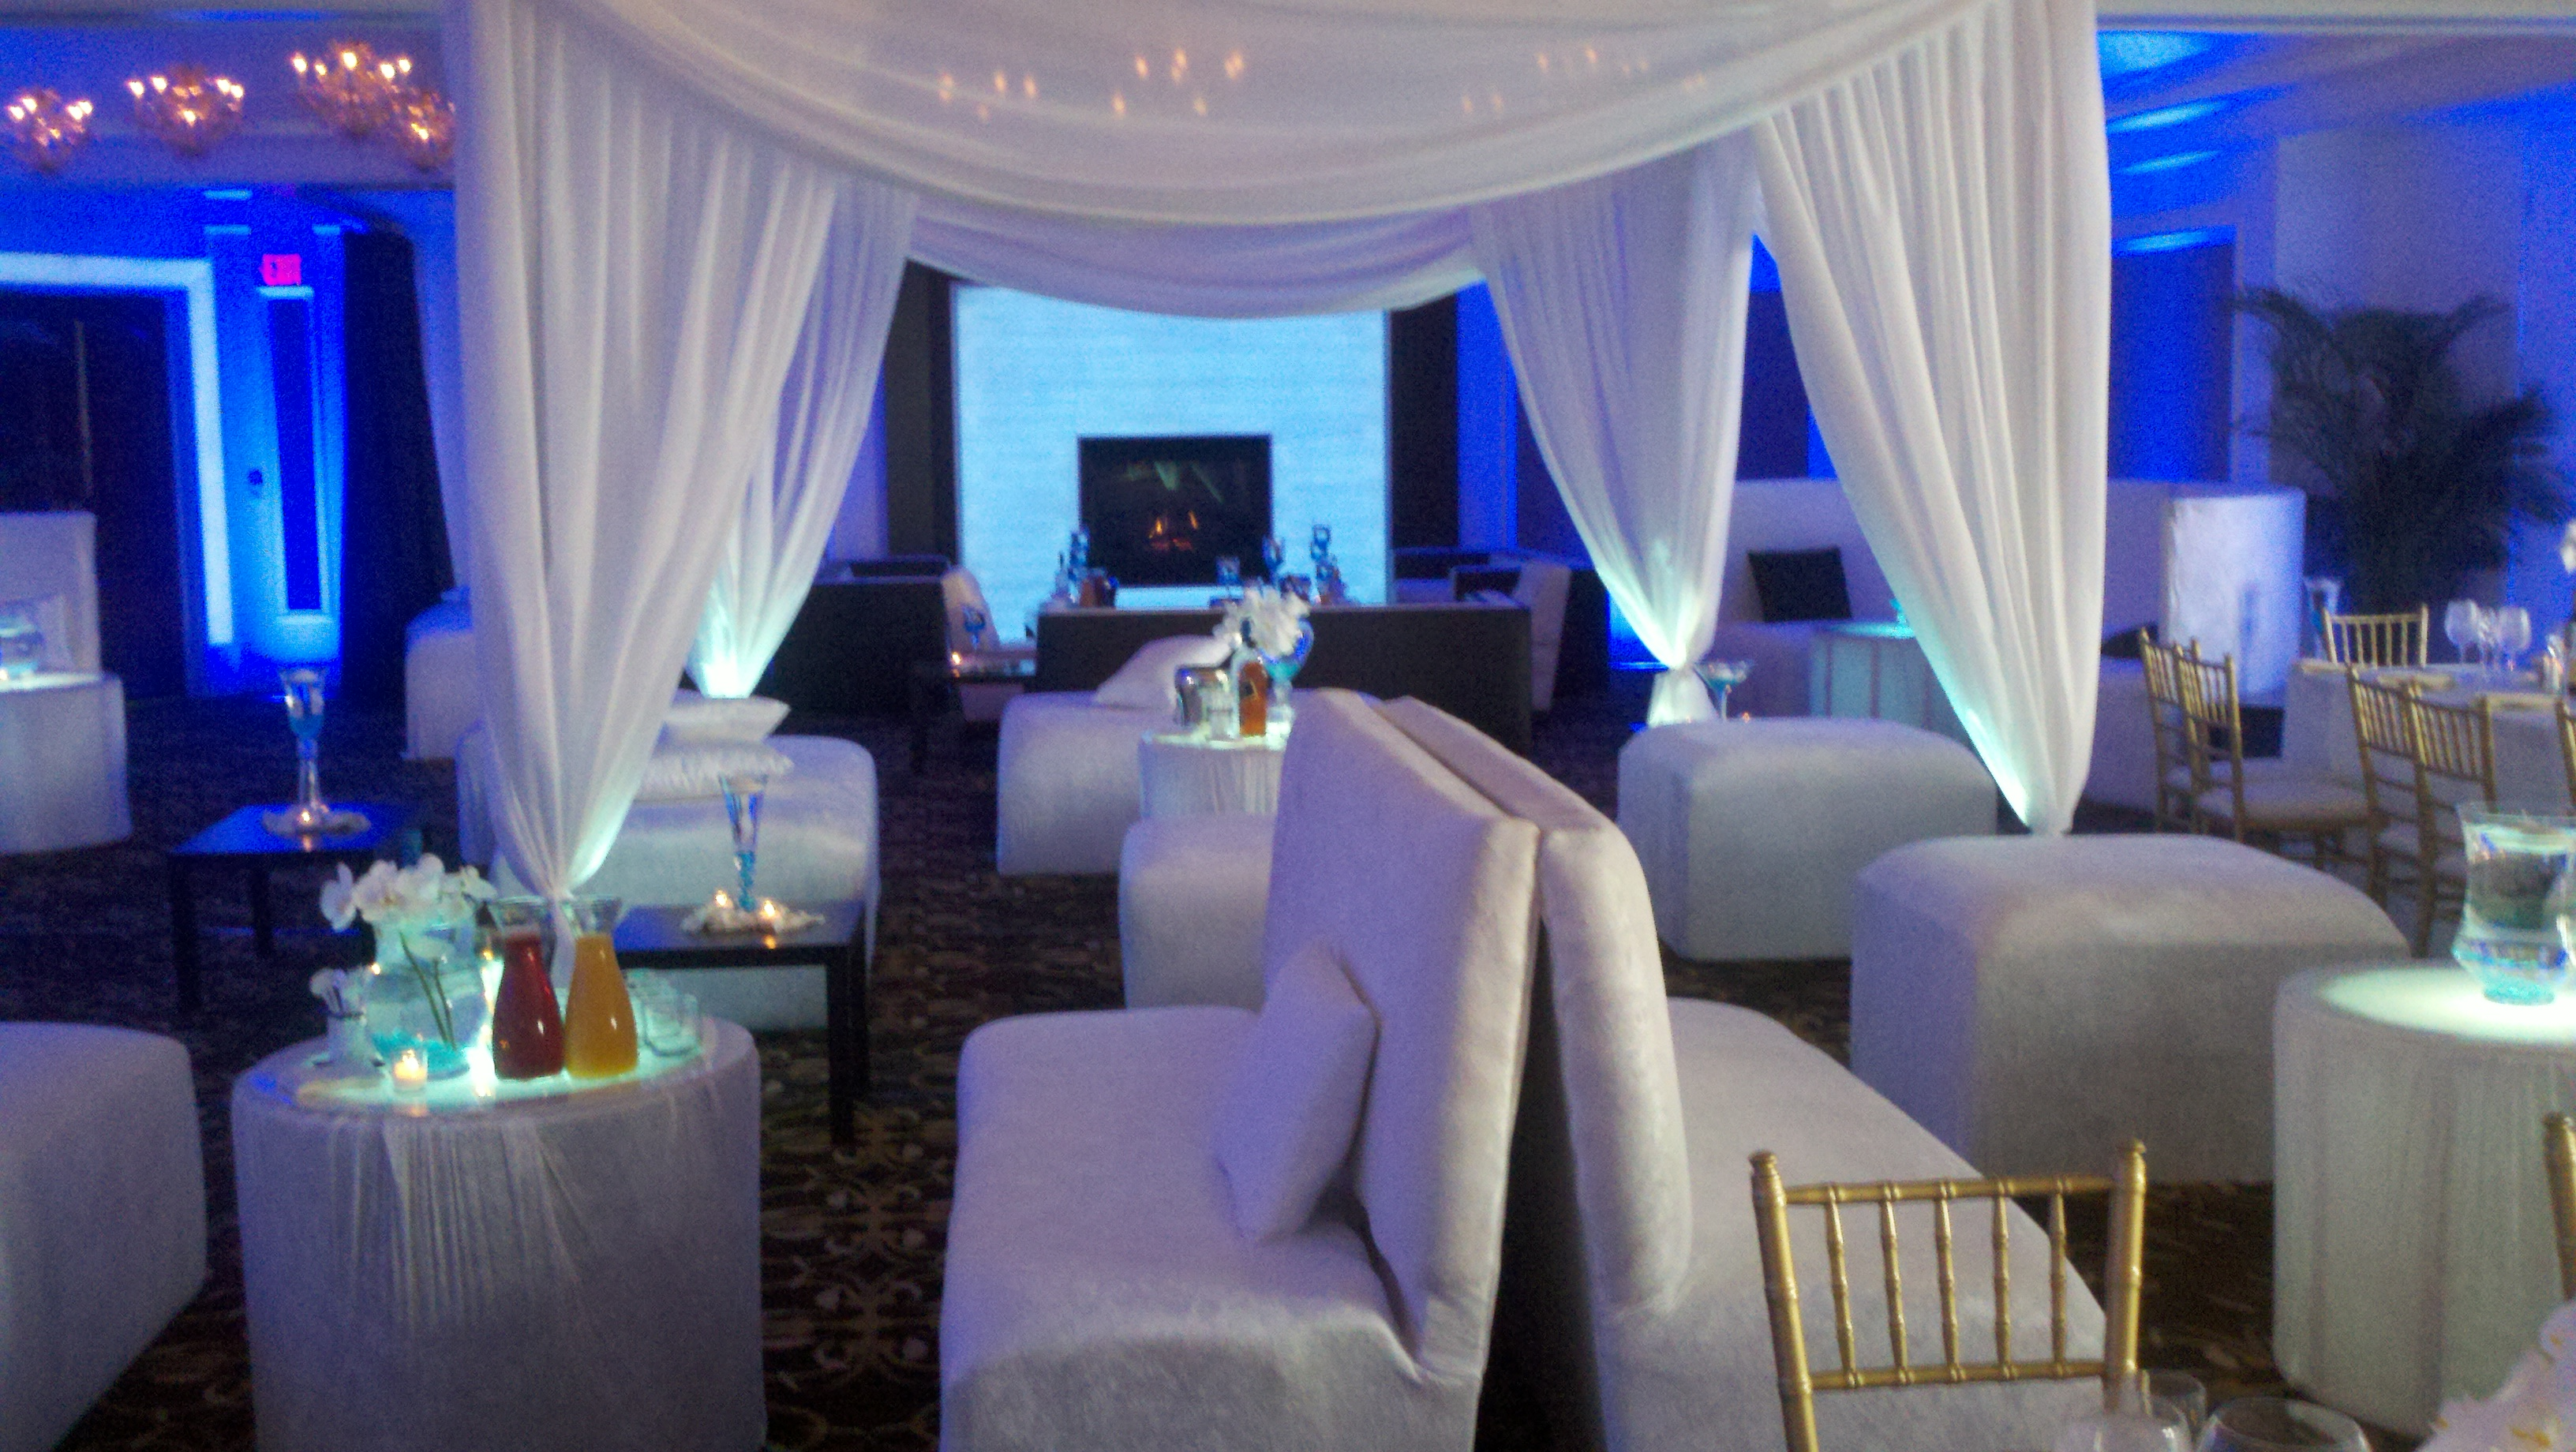 rent tables and chairs nj inexpensive patio top djs provide lounge furniture for weddings sweet